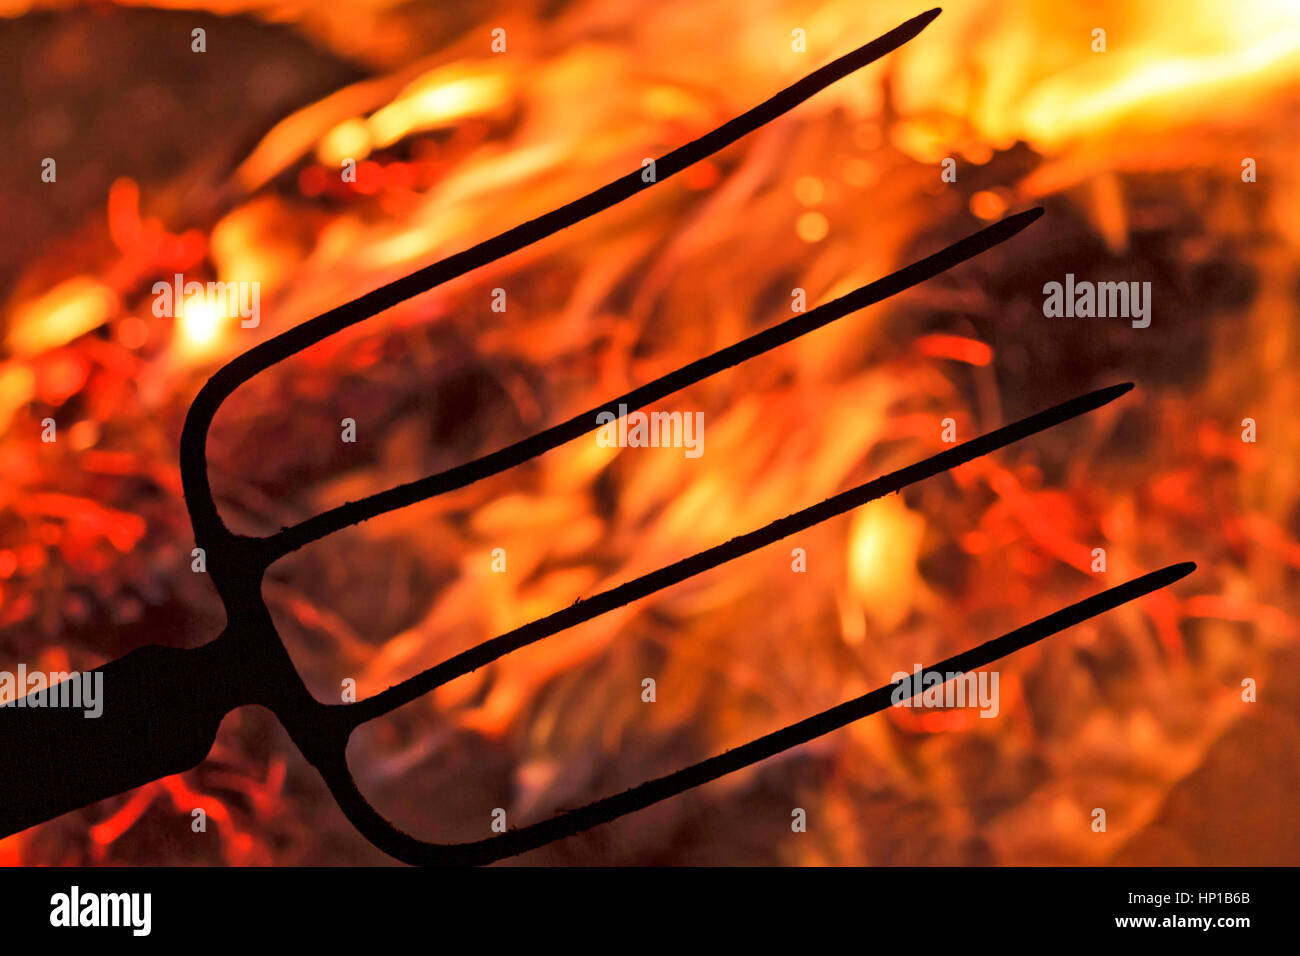 flames of revolution and fork,Revolution, aggression, defense, disagreement politics dictatorship reset - Stock Image